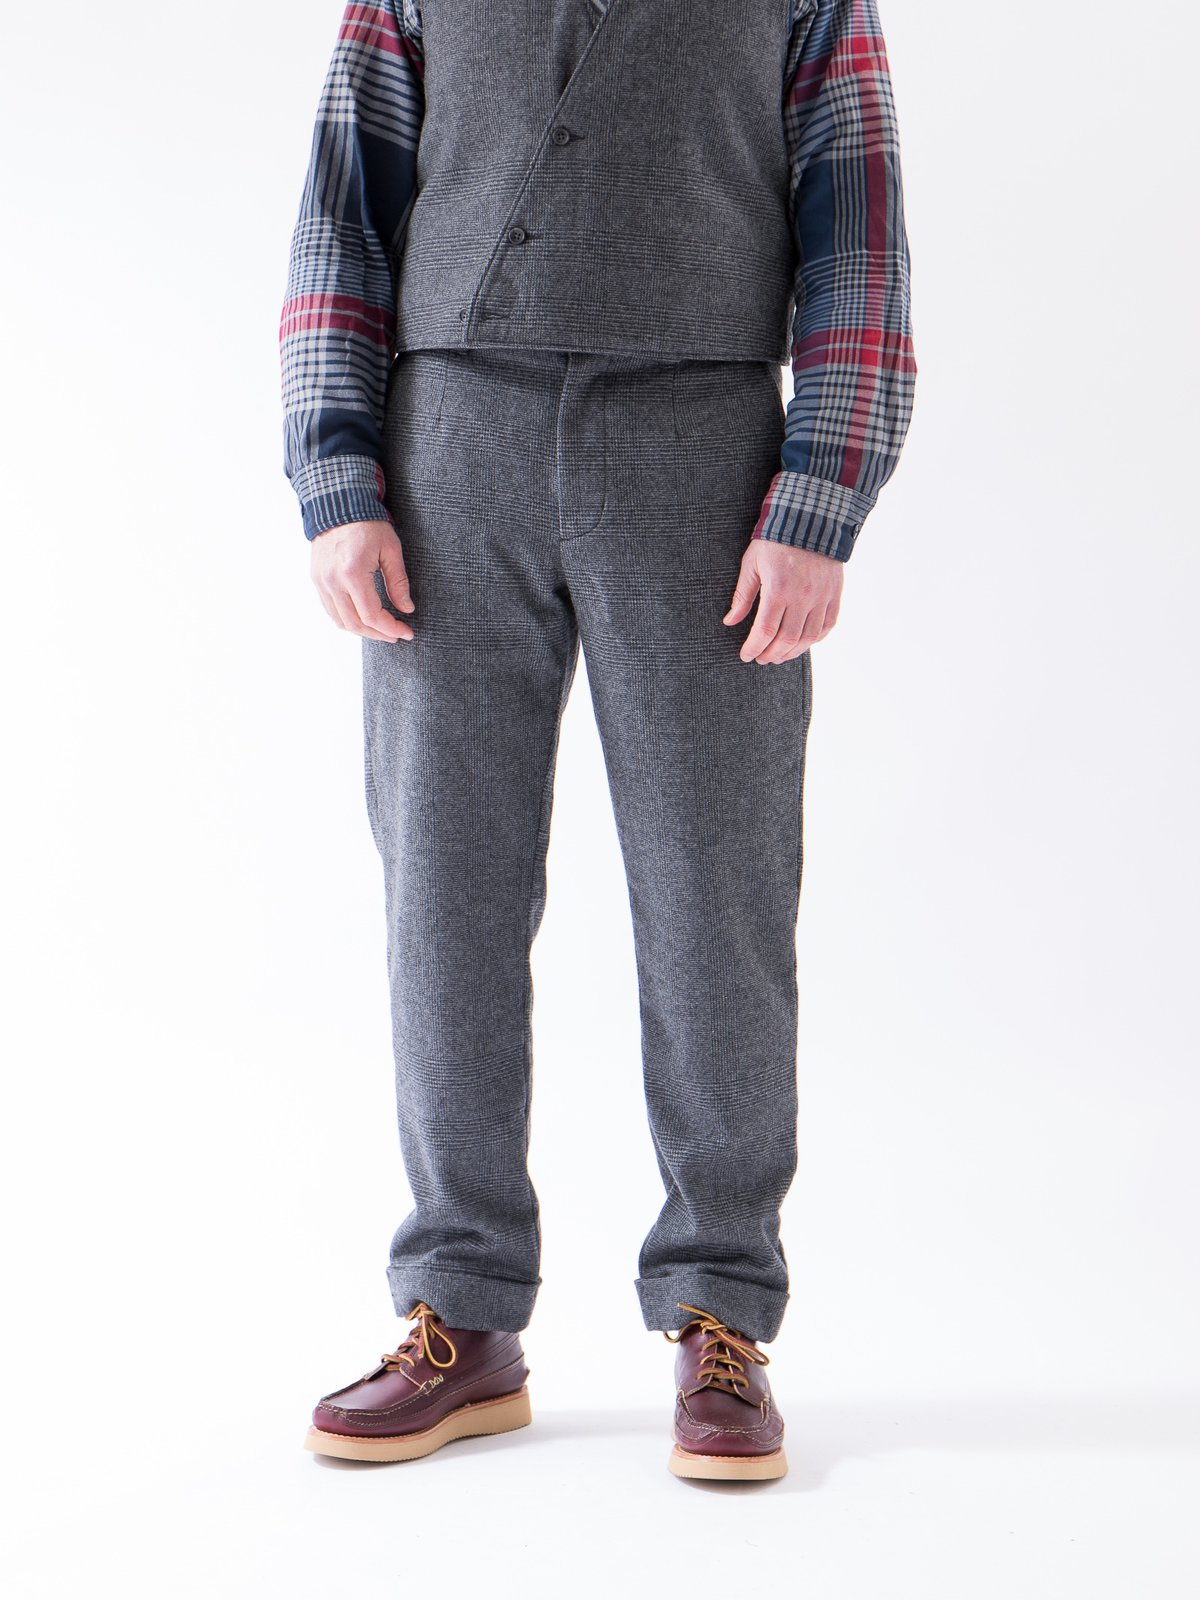 Grey Wool Glen Plaid Stripe Andover Pant - Image 3